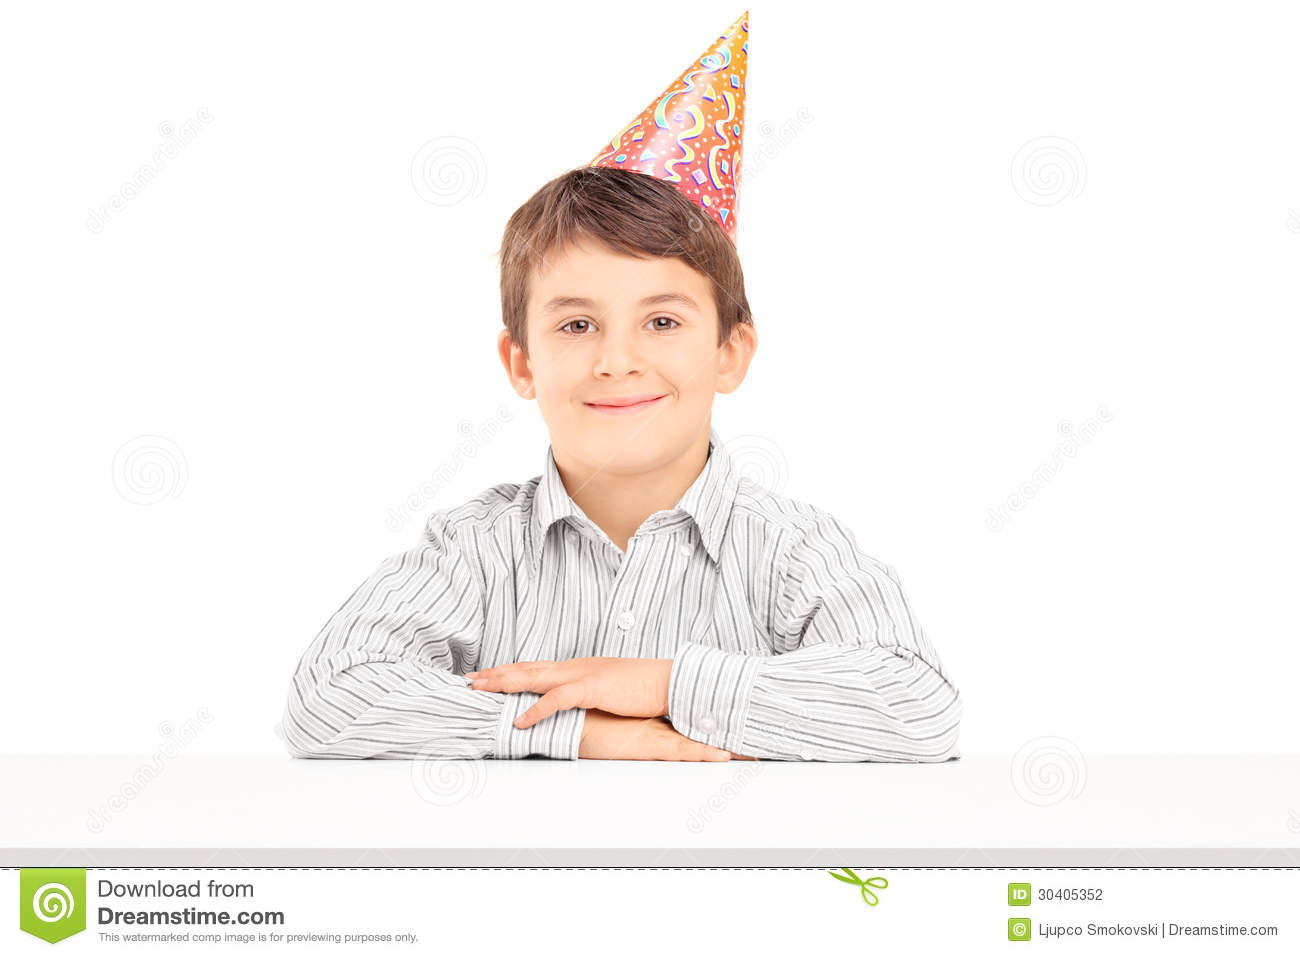 A Smiling Birthday Boy With Party Hat Posing On Table